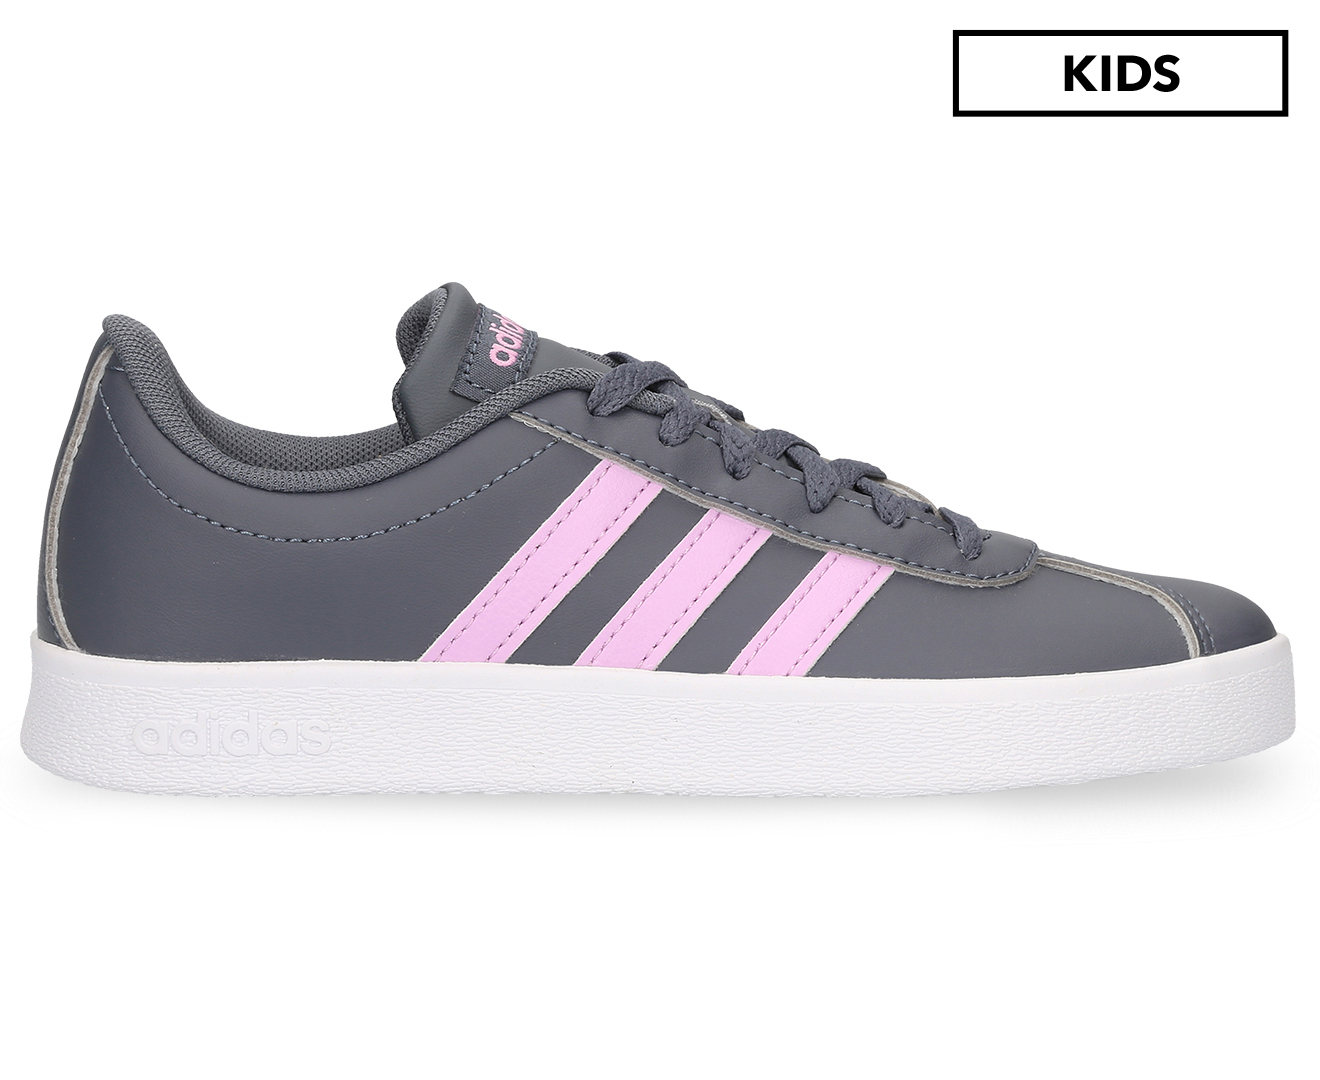 adidas VL Court Suede Ladies Trainers | Women's trainers